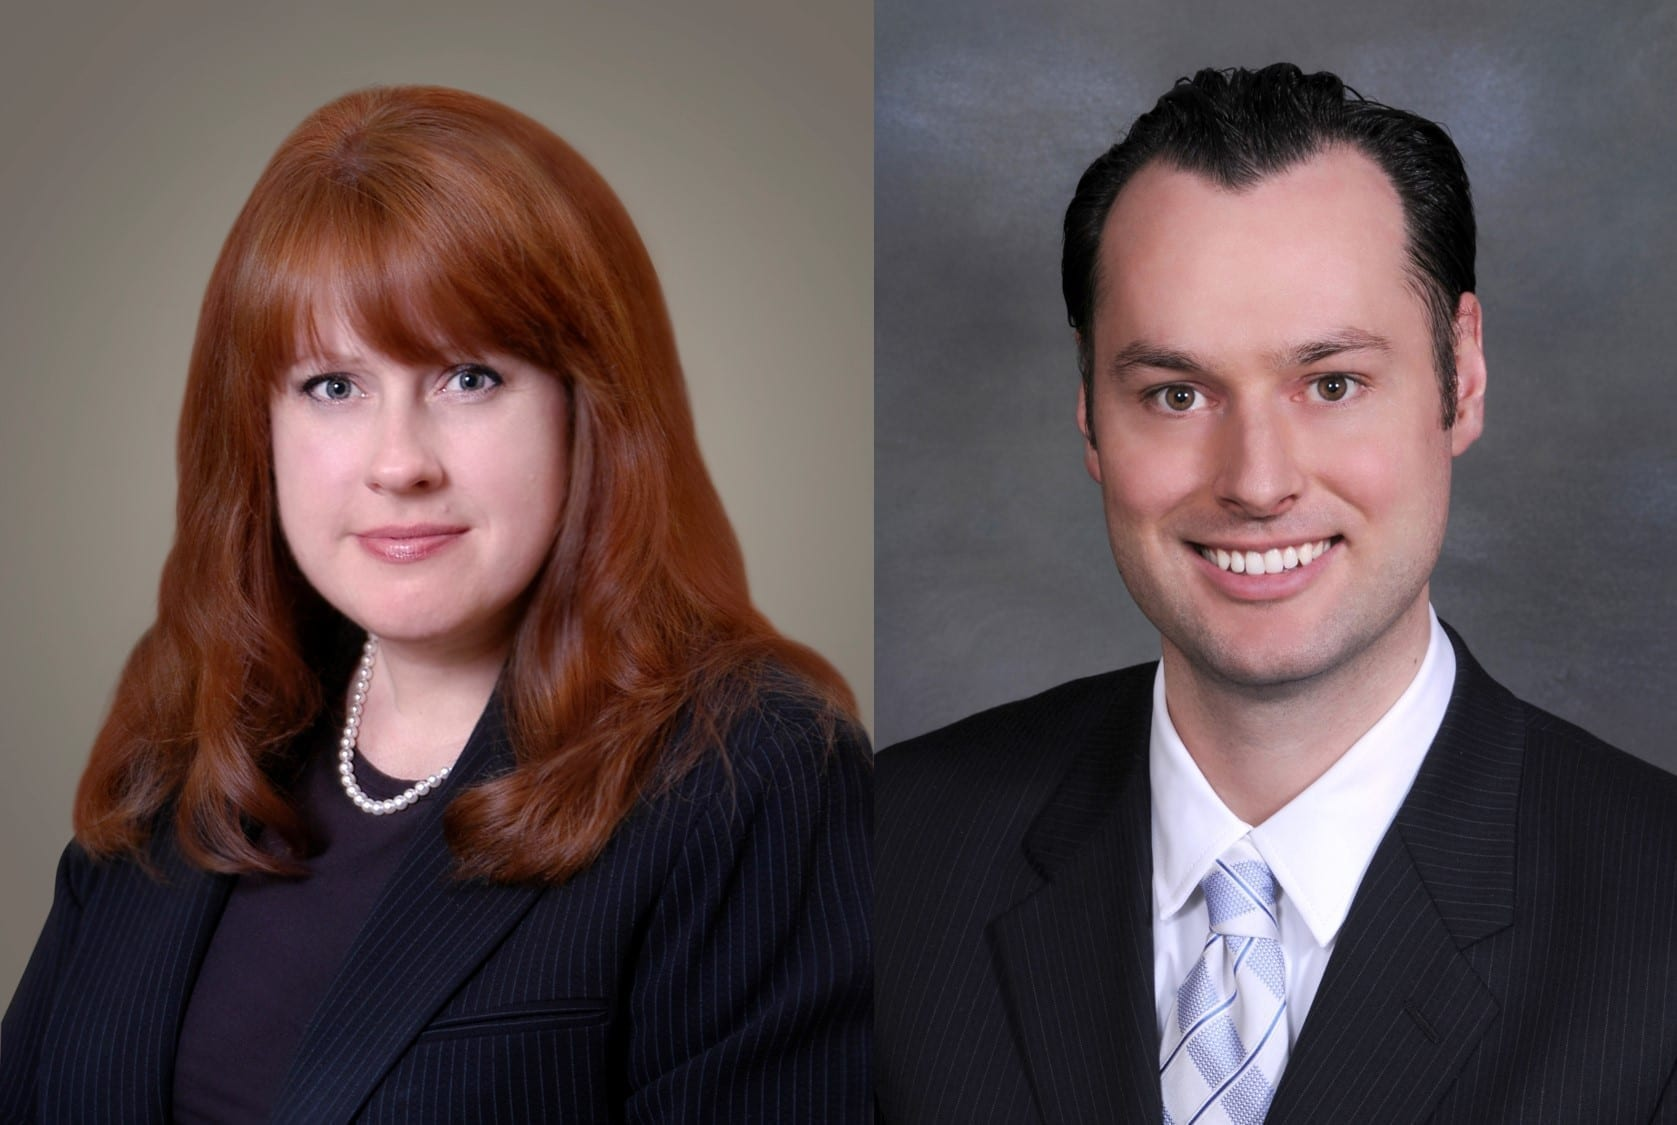 Michelle C. Harrell and James M. Reid, IV; image courtesy of Maddin, Hauser.